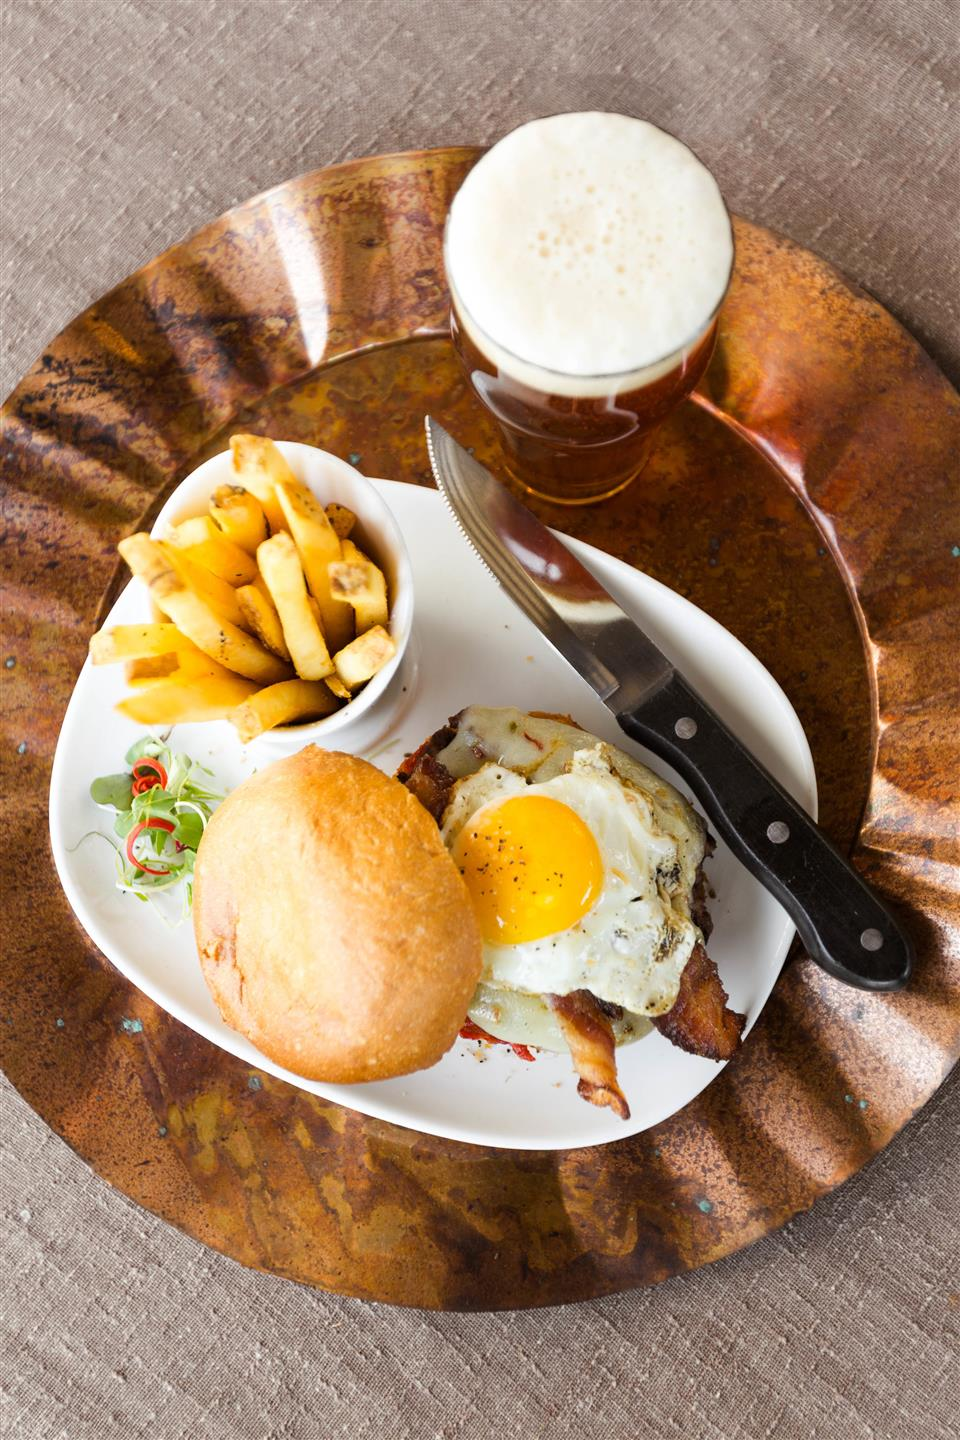 eggs, bacon, roll, french fries and glass of beer